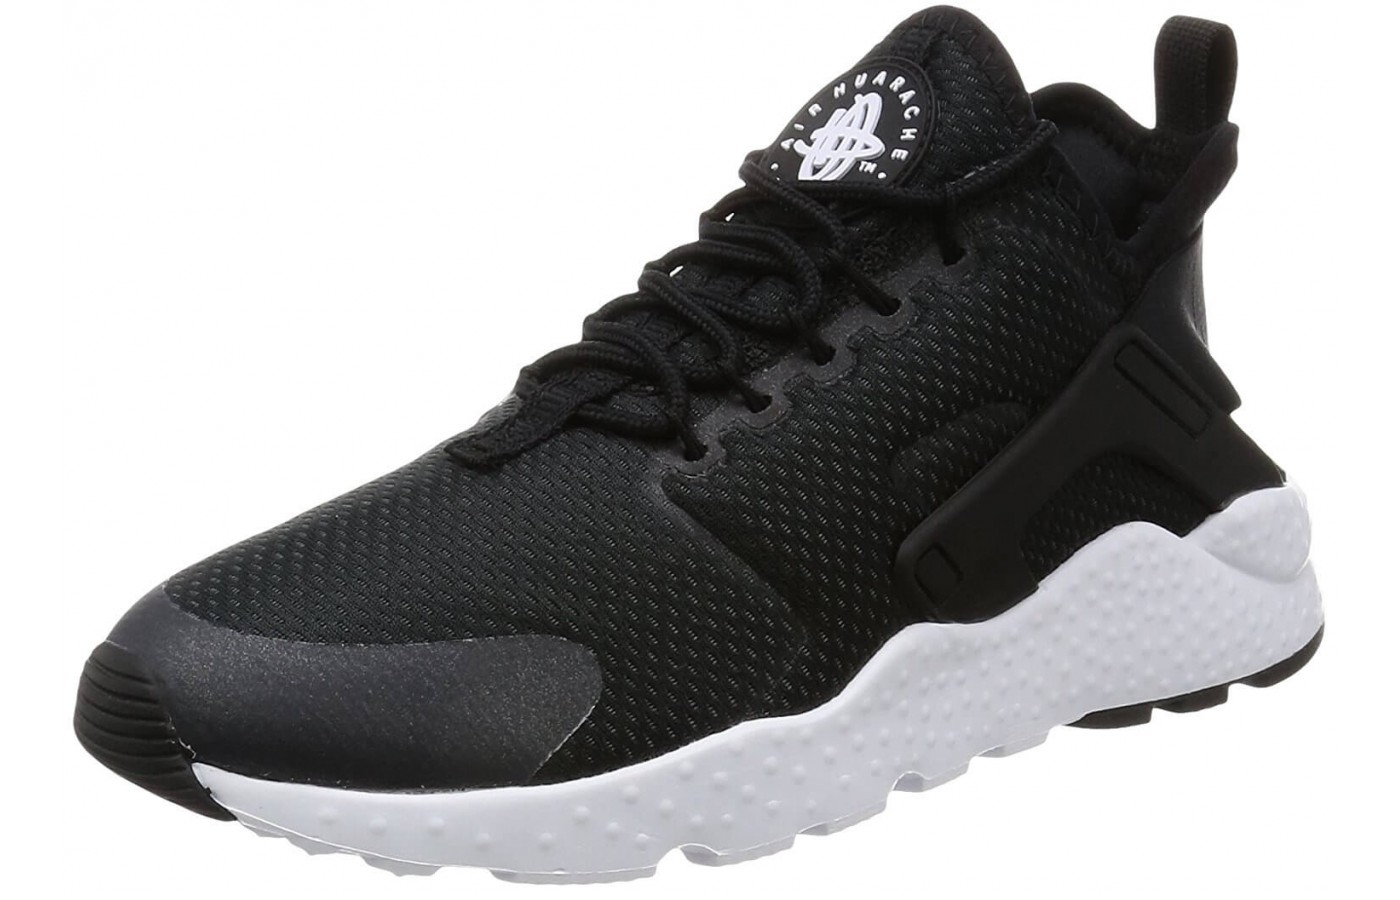 Although the Nike Air Huarache Ultra has a slight heel drop, it is much less than that of traditional running shoes.